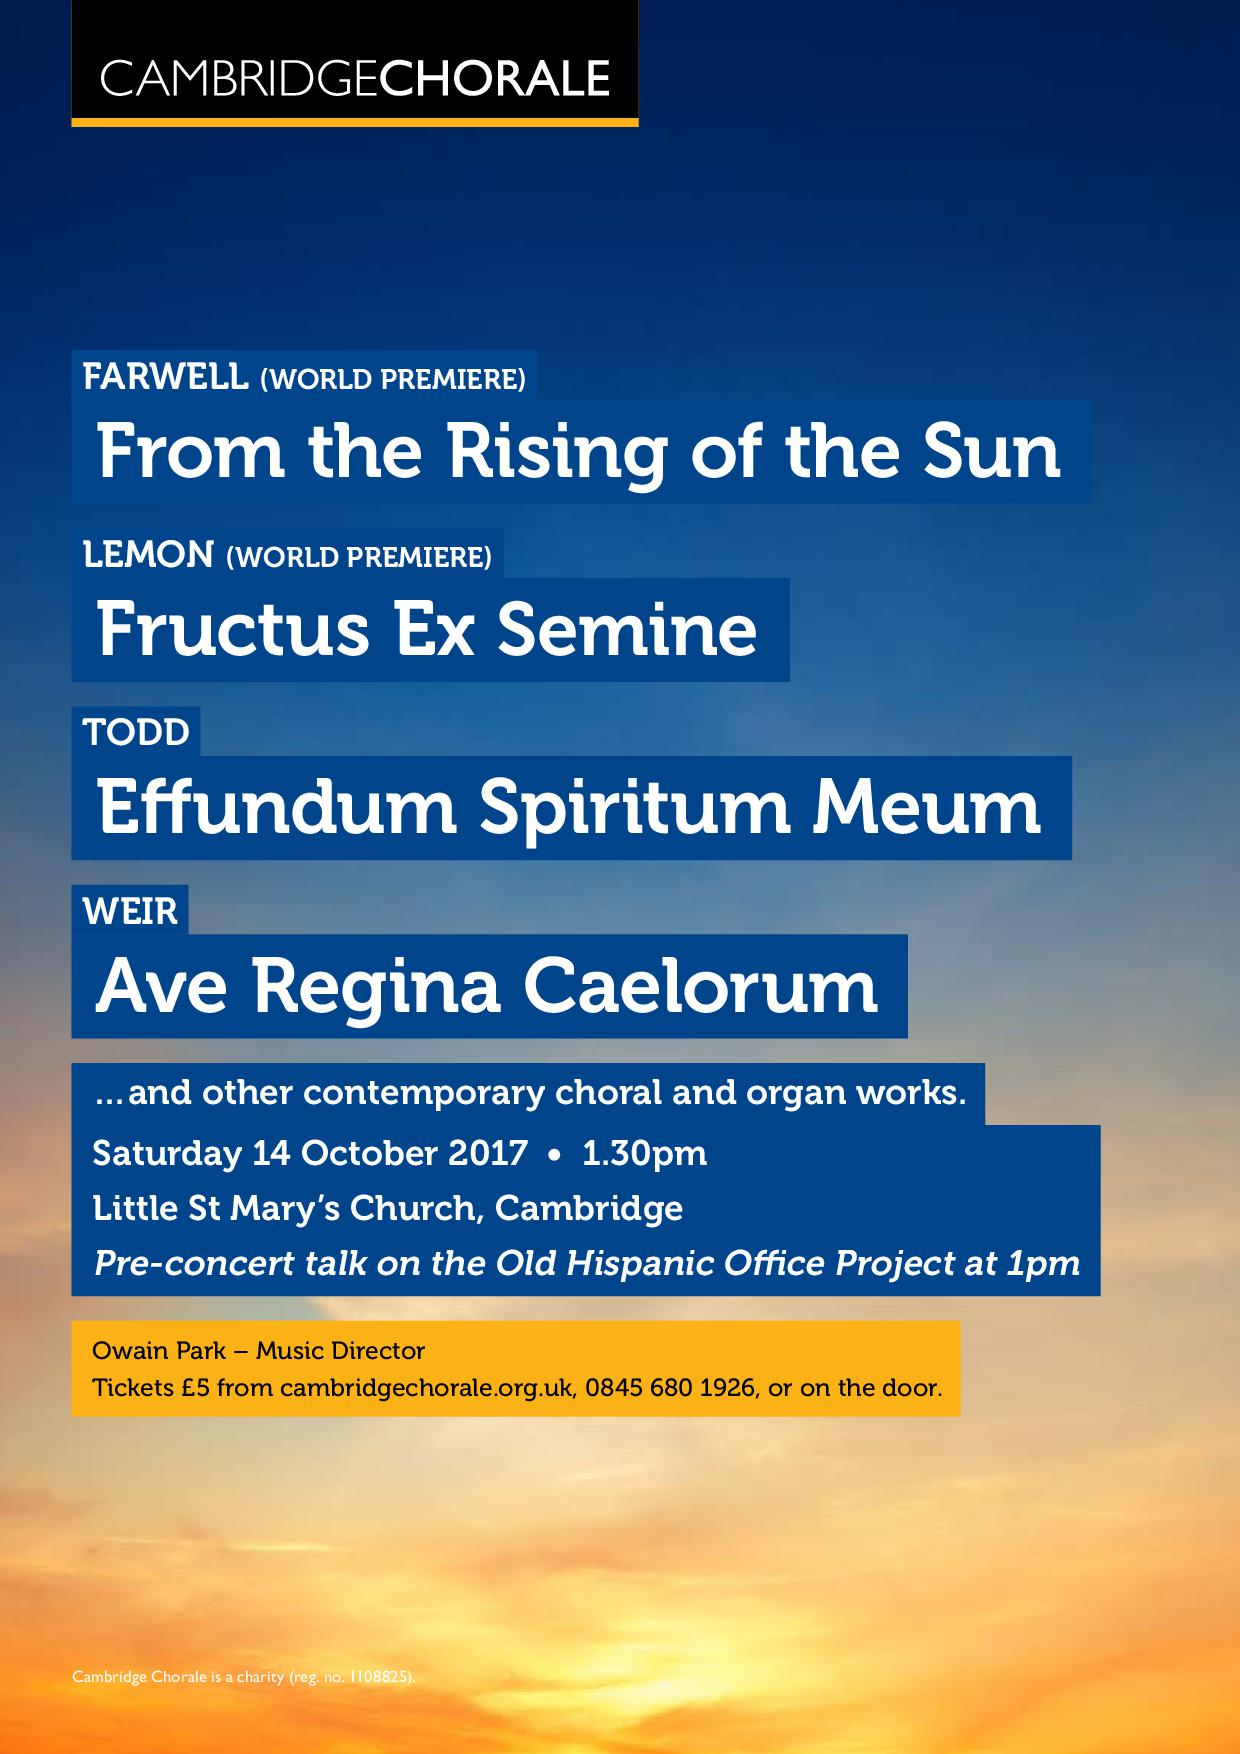 Cambridge Chorale: From the Rising of the Sun